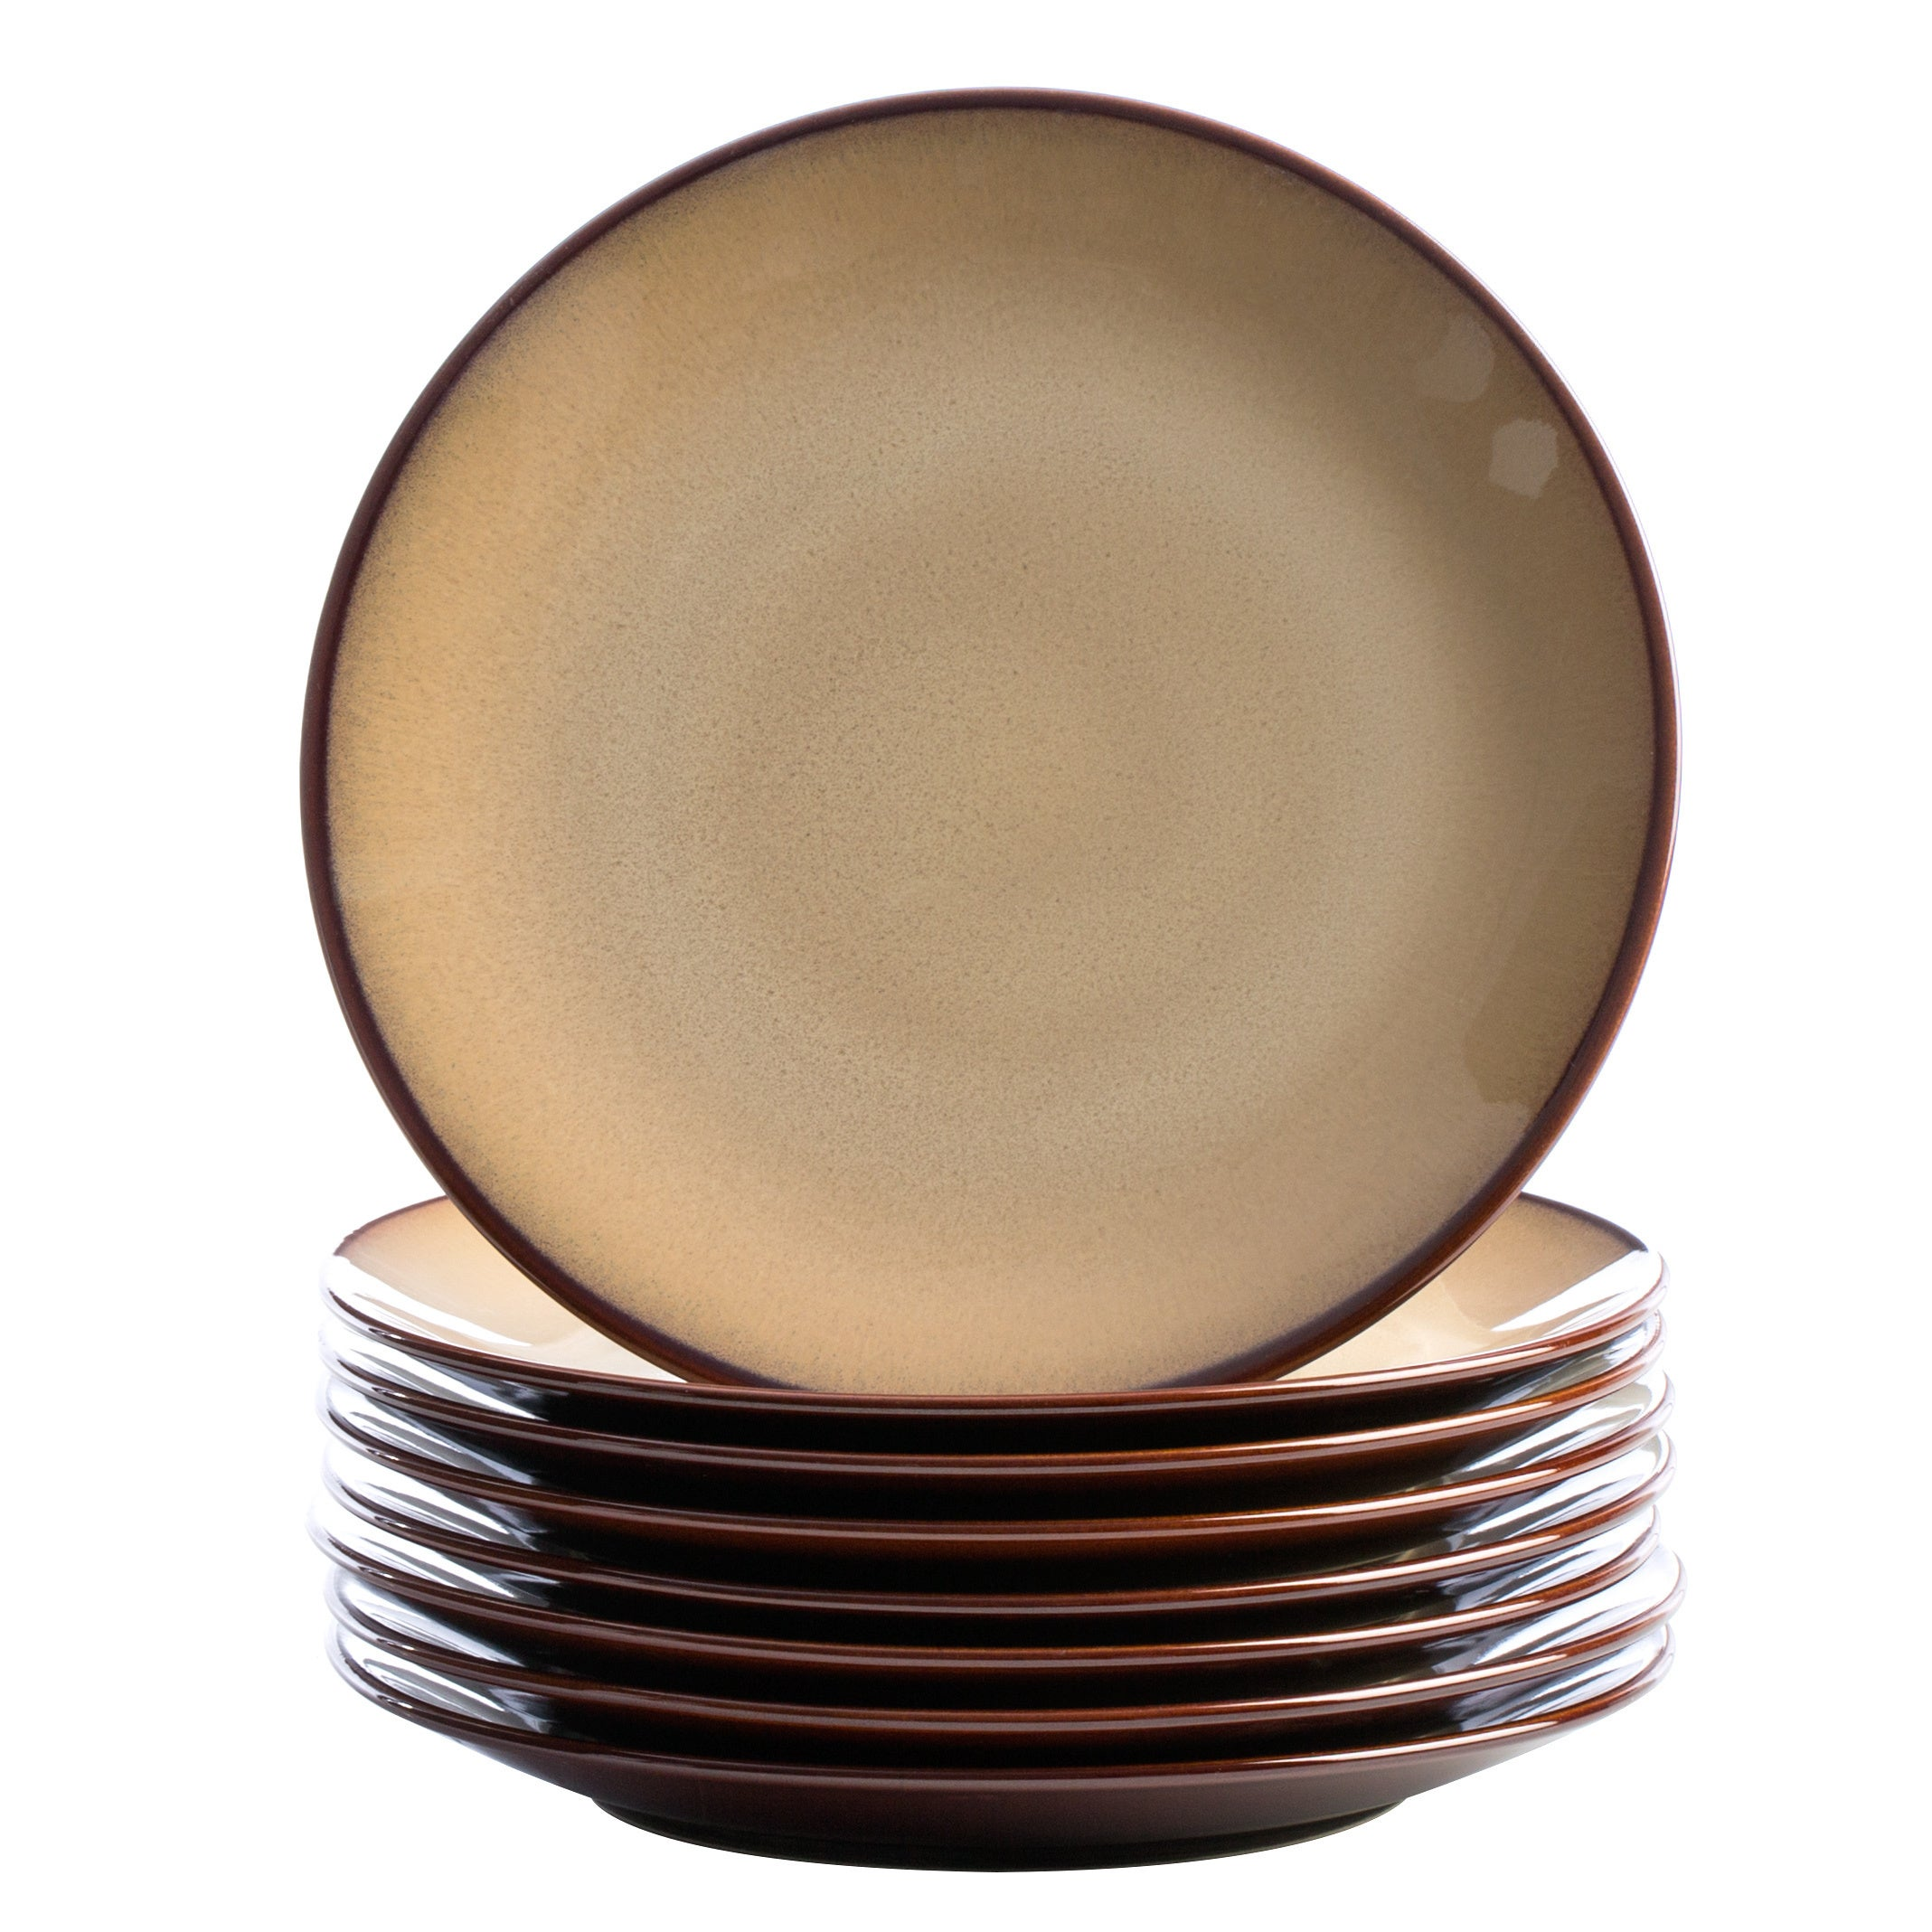 Shop Sango 40-piece Nova Brown Stoneware Dinnerware Set - Free Shipping Today - Overstock.com - 5166018  sc 1 st  Overstock : sango dinnerware sets - pezcame.com